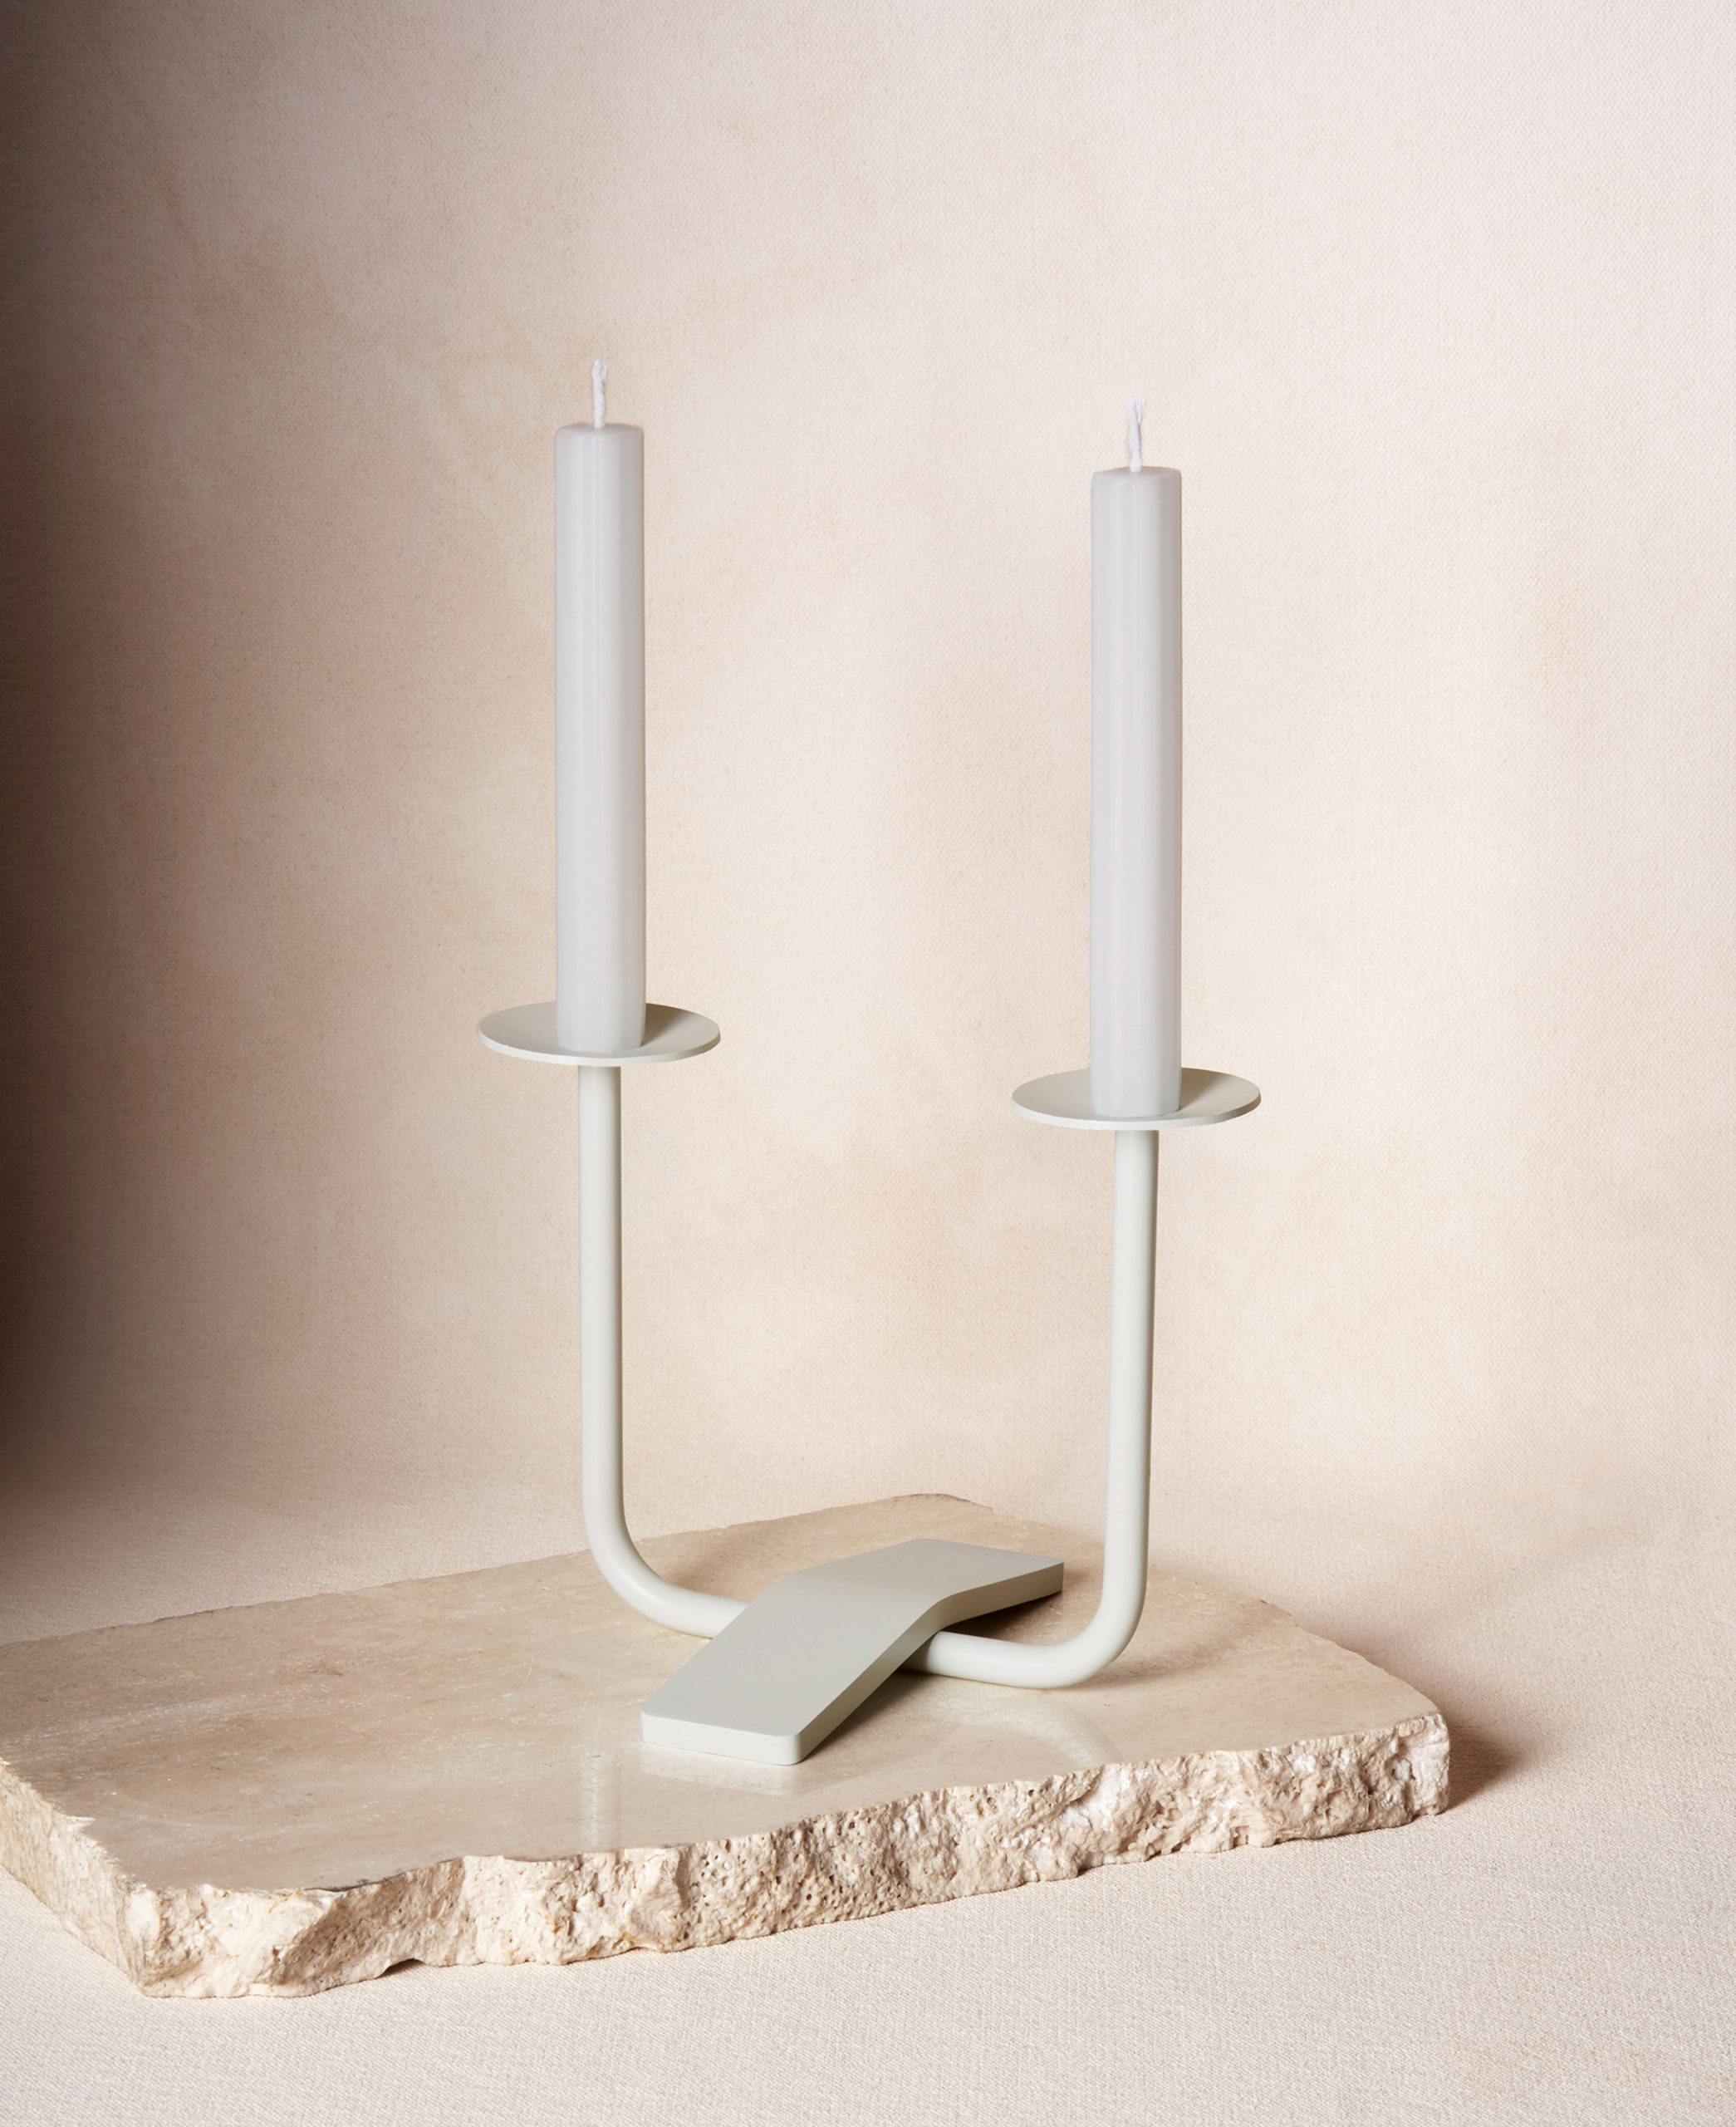 Rest Candleholder in Via Maris by Dana Hollar Schwartz and Jamie Wolfond